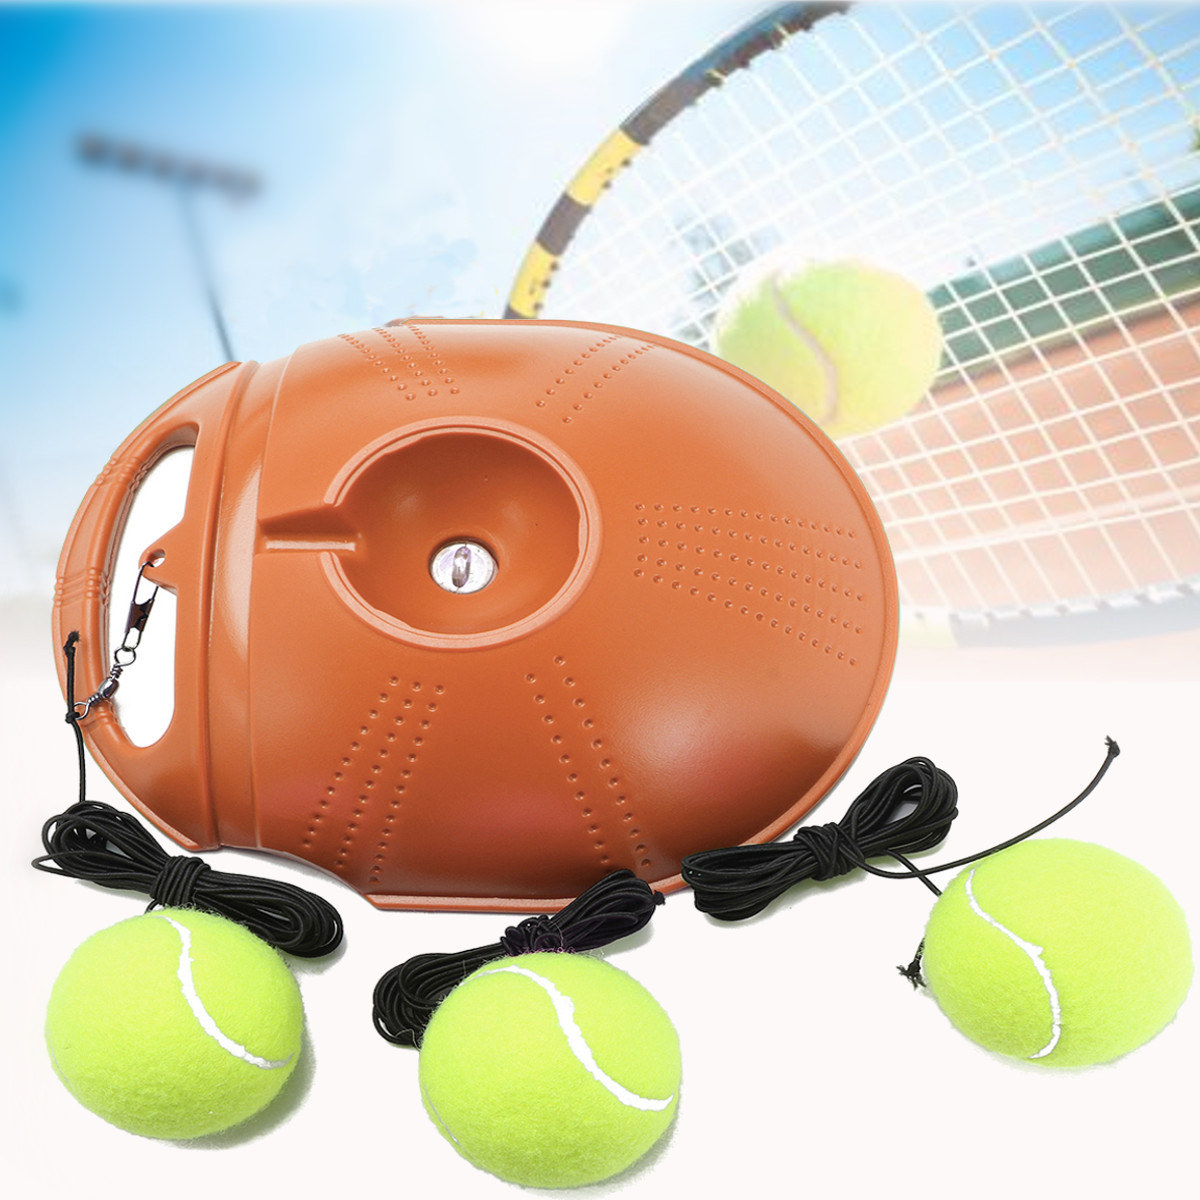 Tennis Trainer and Self-study Tennis Training Tool with Rebound Balls and Baseboard 2